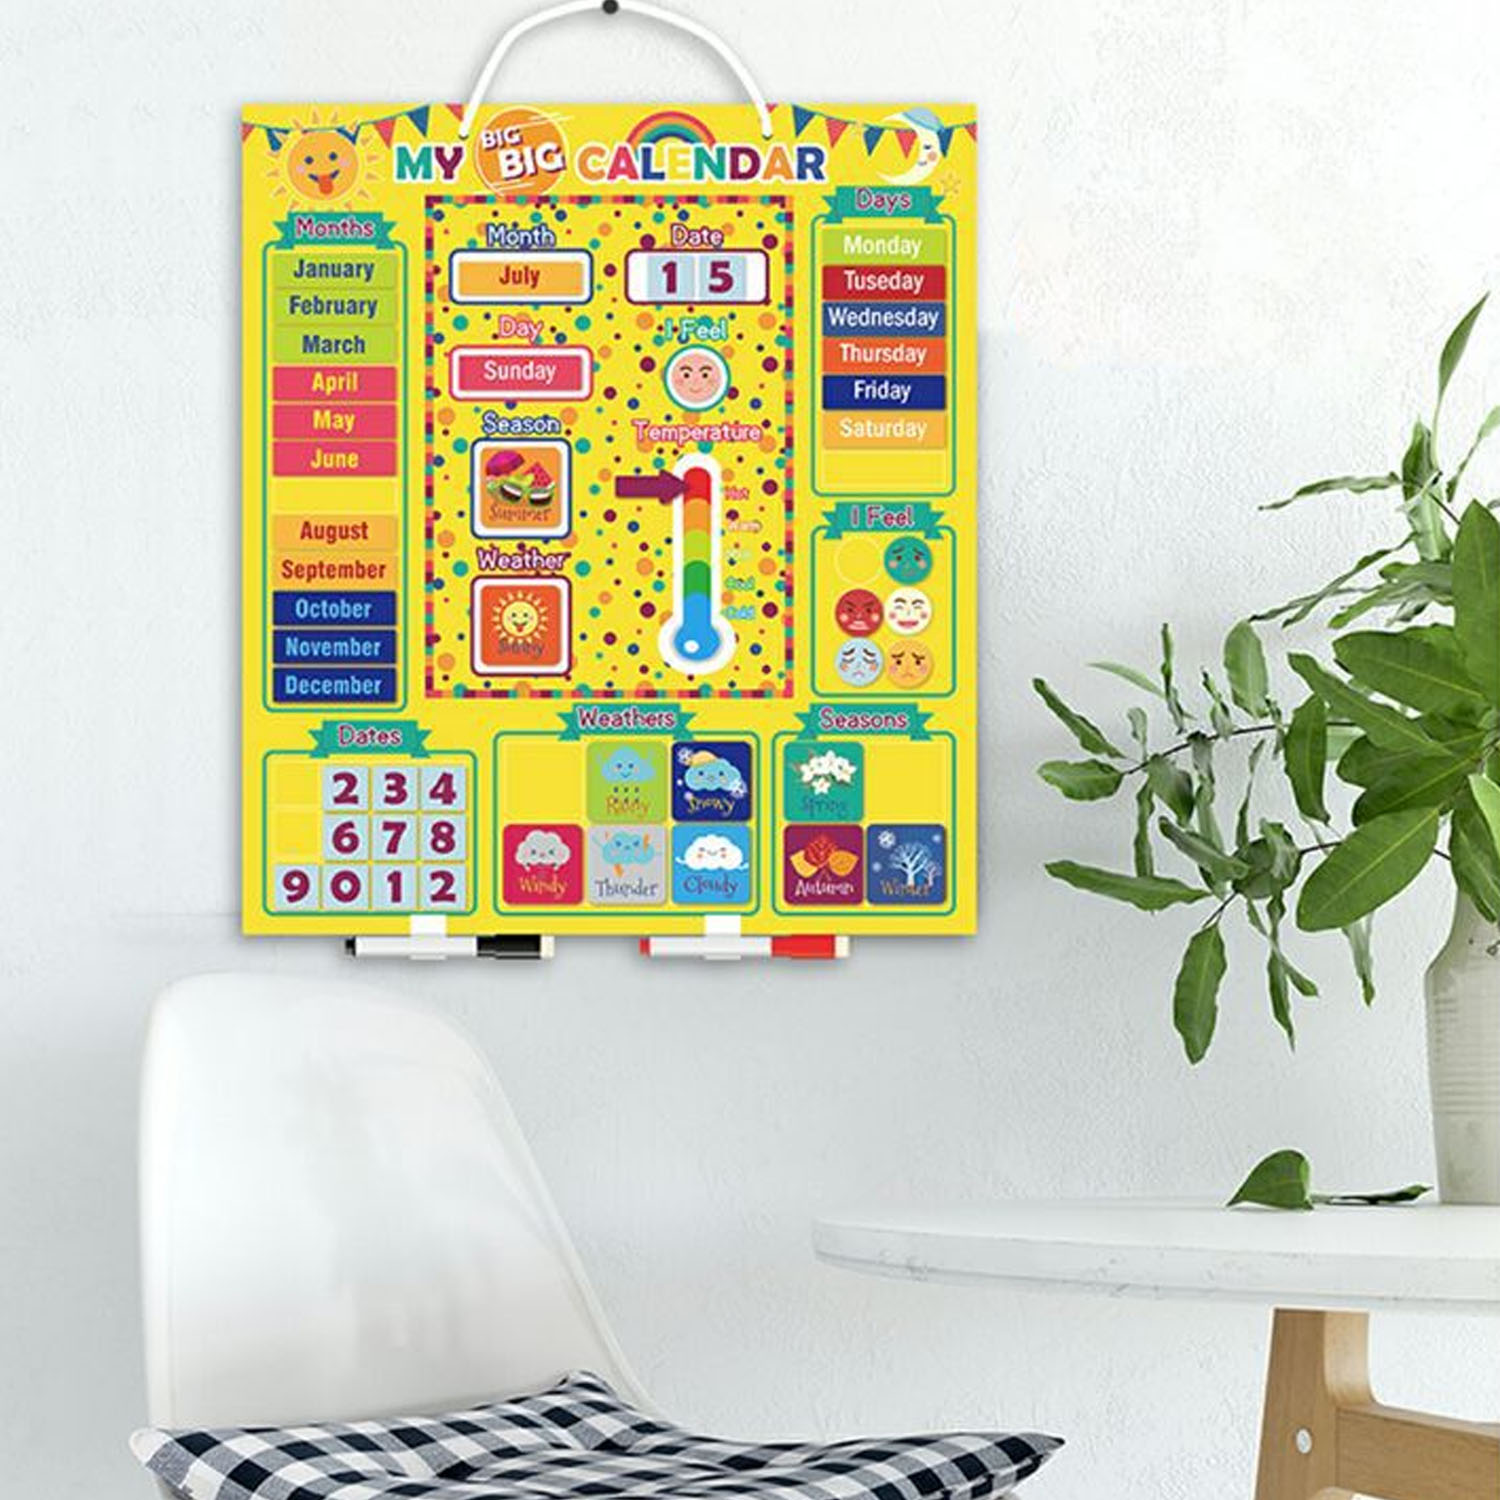 Magnetic Calendar Chart Board Days Dates Months Moods Weather Temperatur Seasons Learning Toy For Kids Children Home Preschool